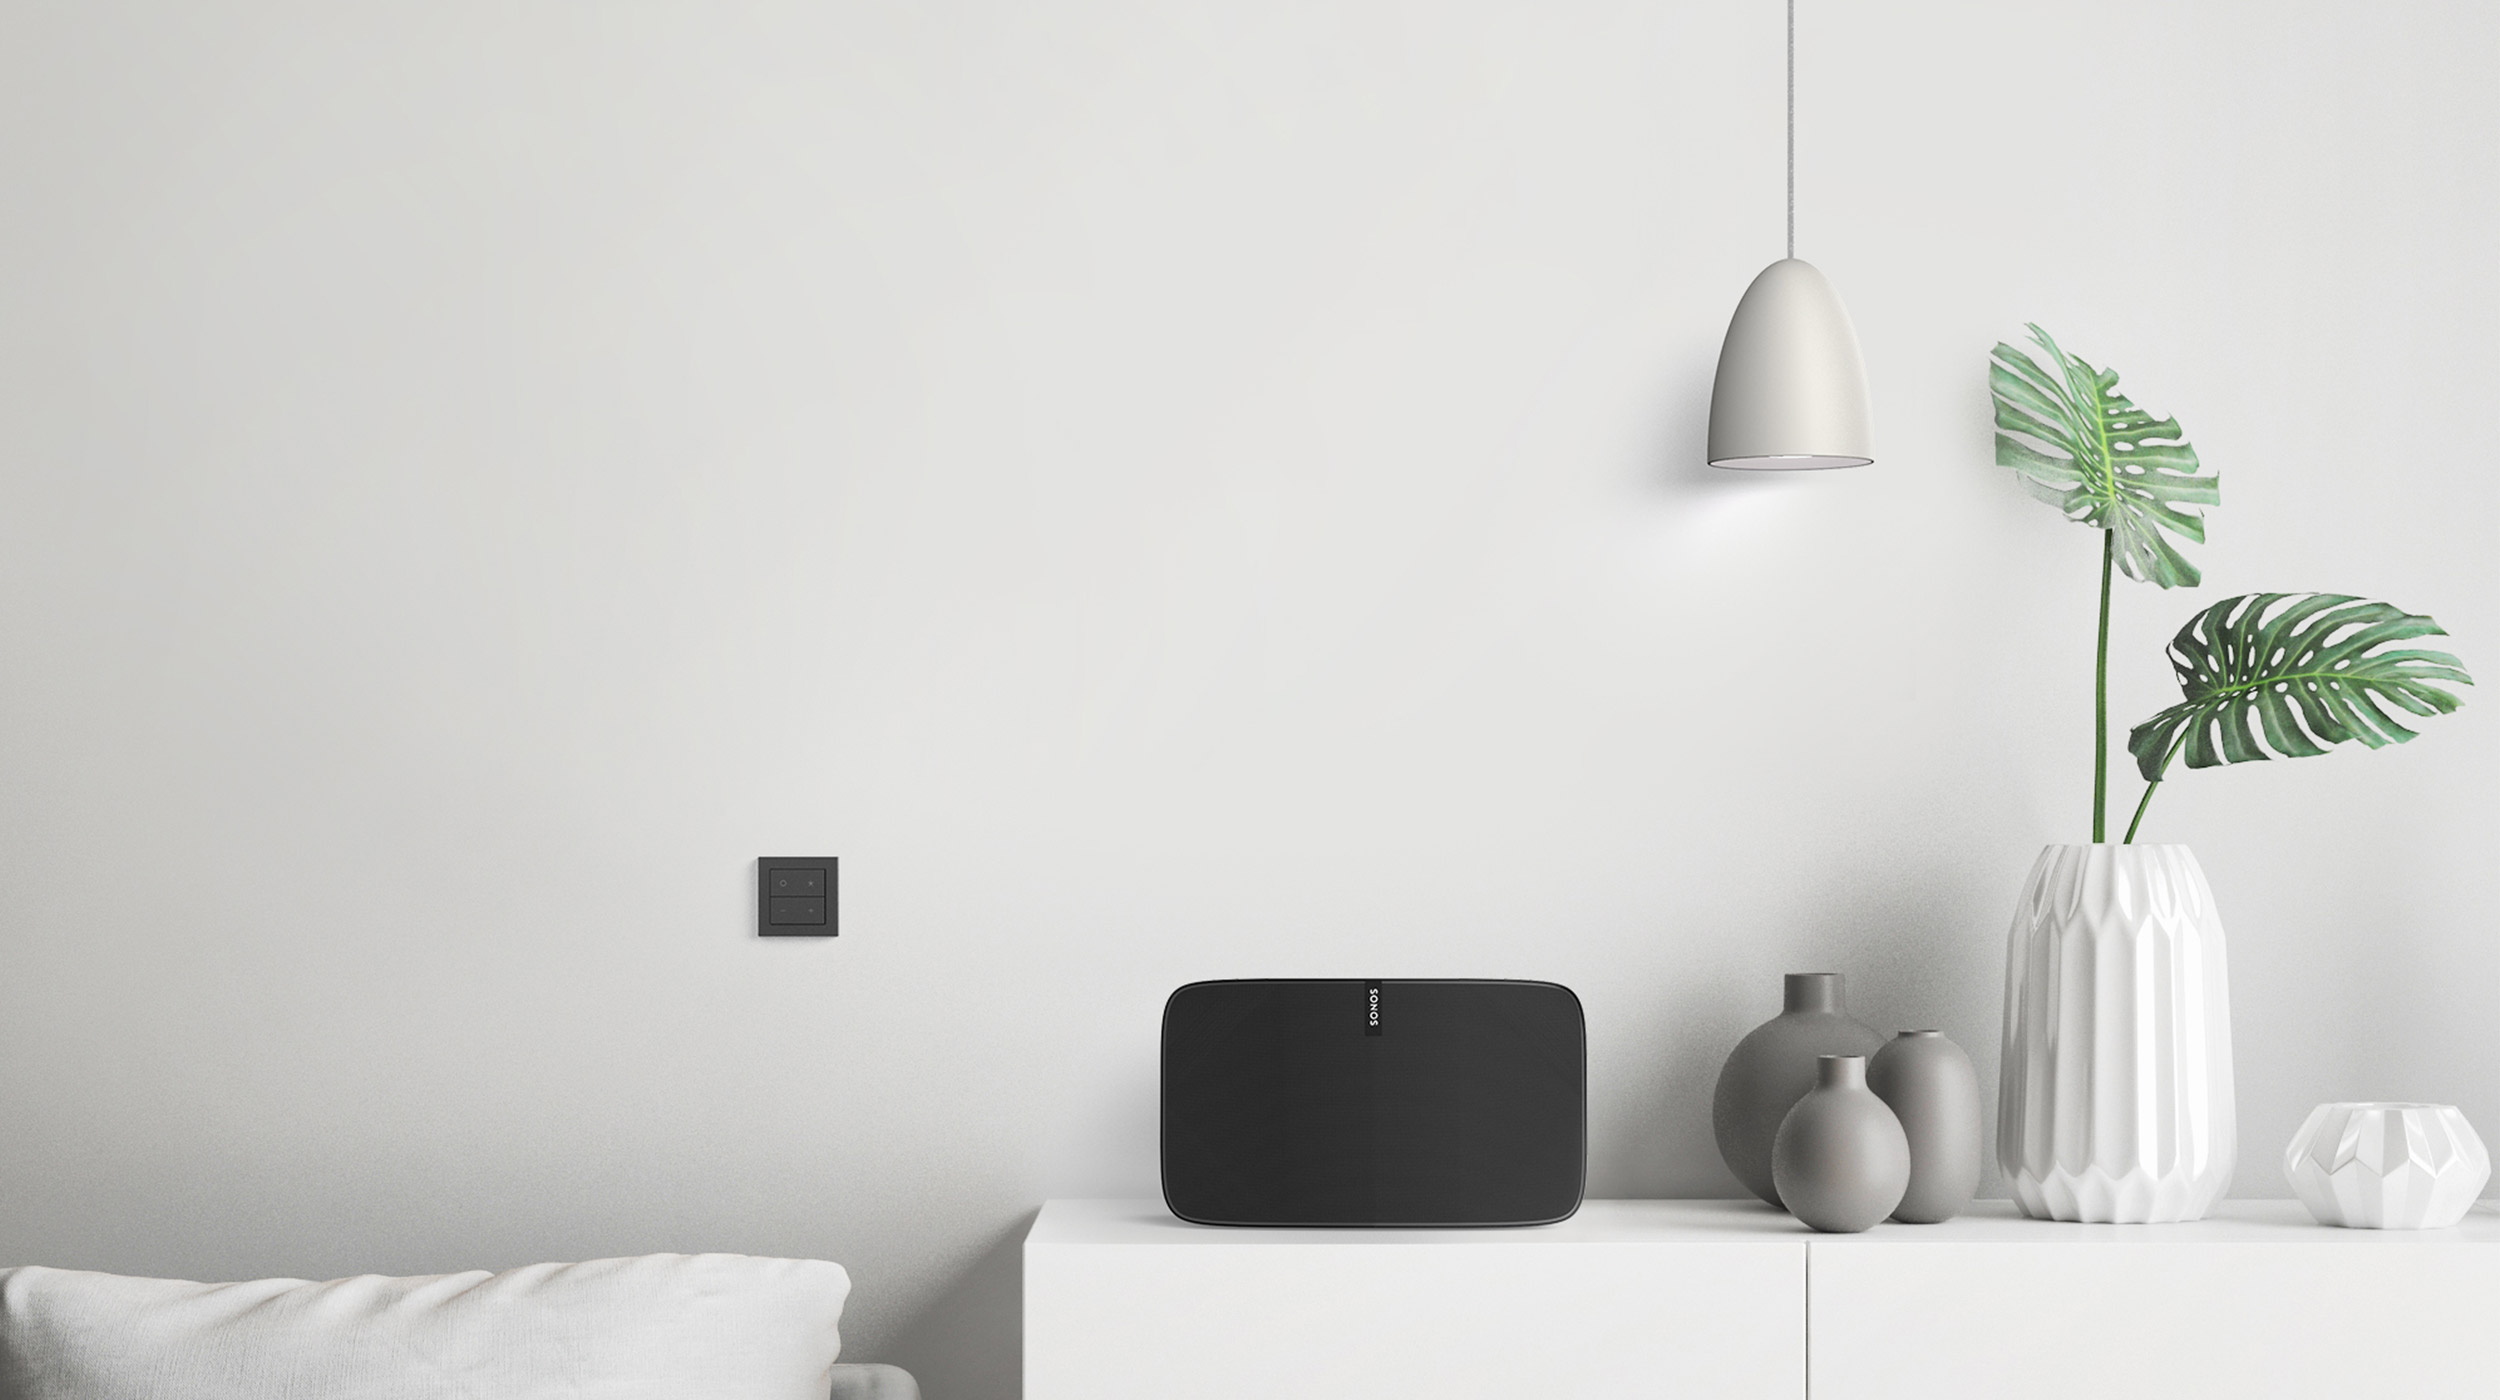 Nuimo Click Black on a stylish architectural white design. Next to it is a Sonos dark speaker and some green plants